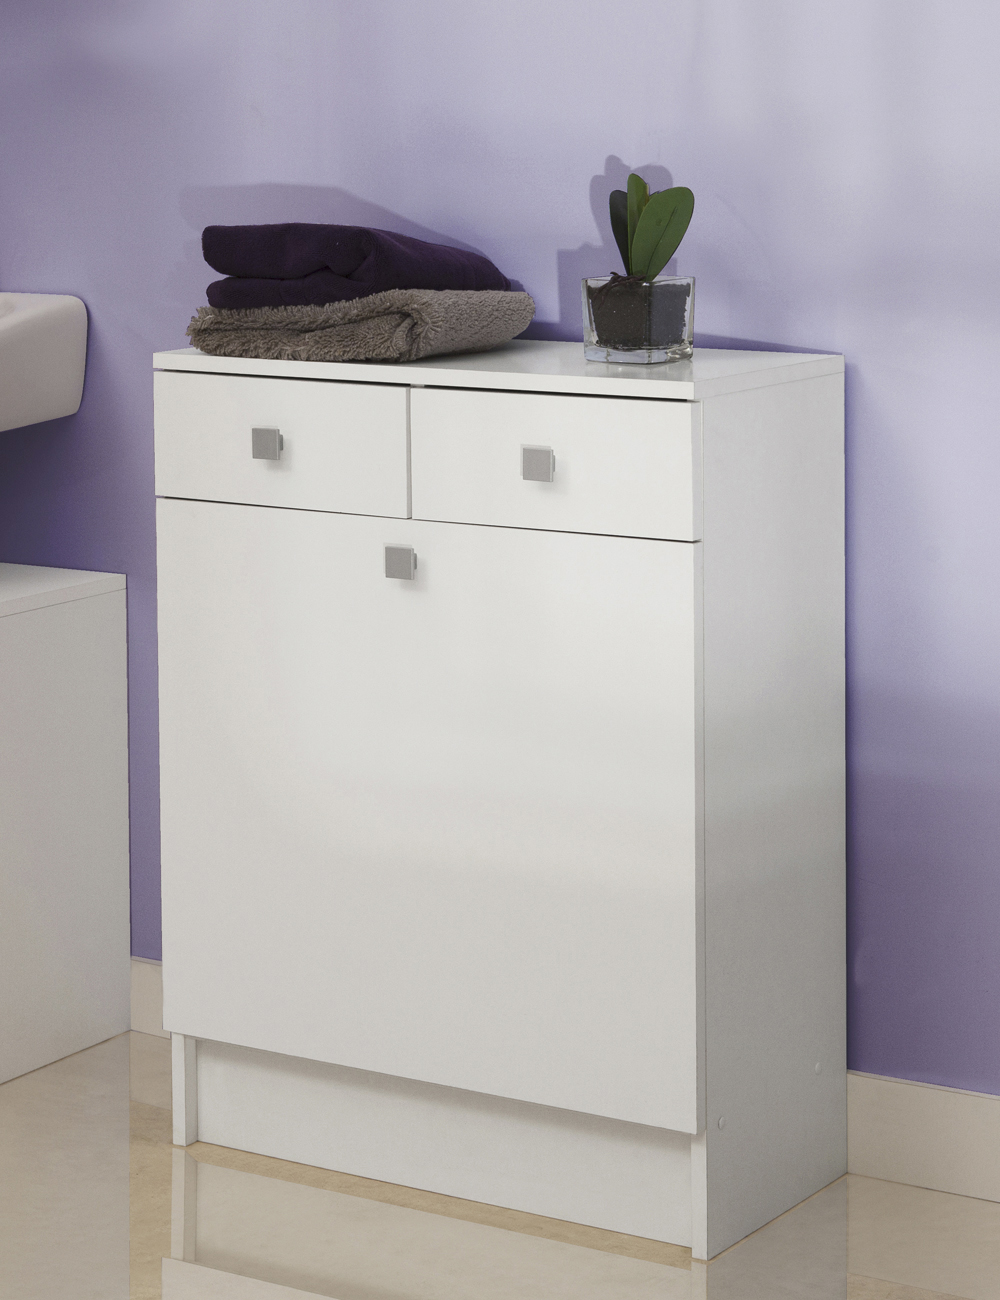 armoire linge sale avec sac int gr blanc. Black Bedroom Furniture Sets. Home Design Ideas